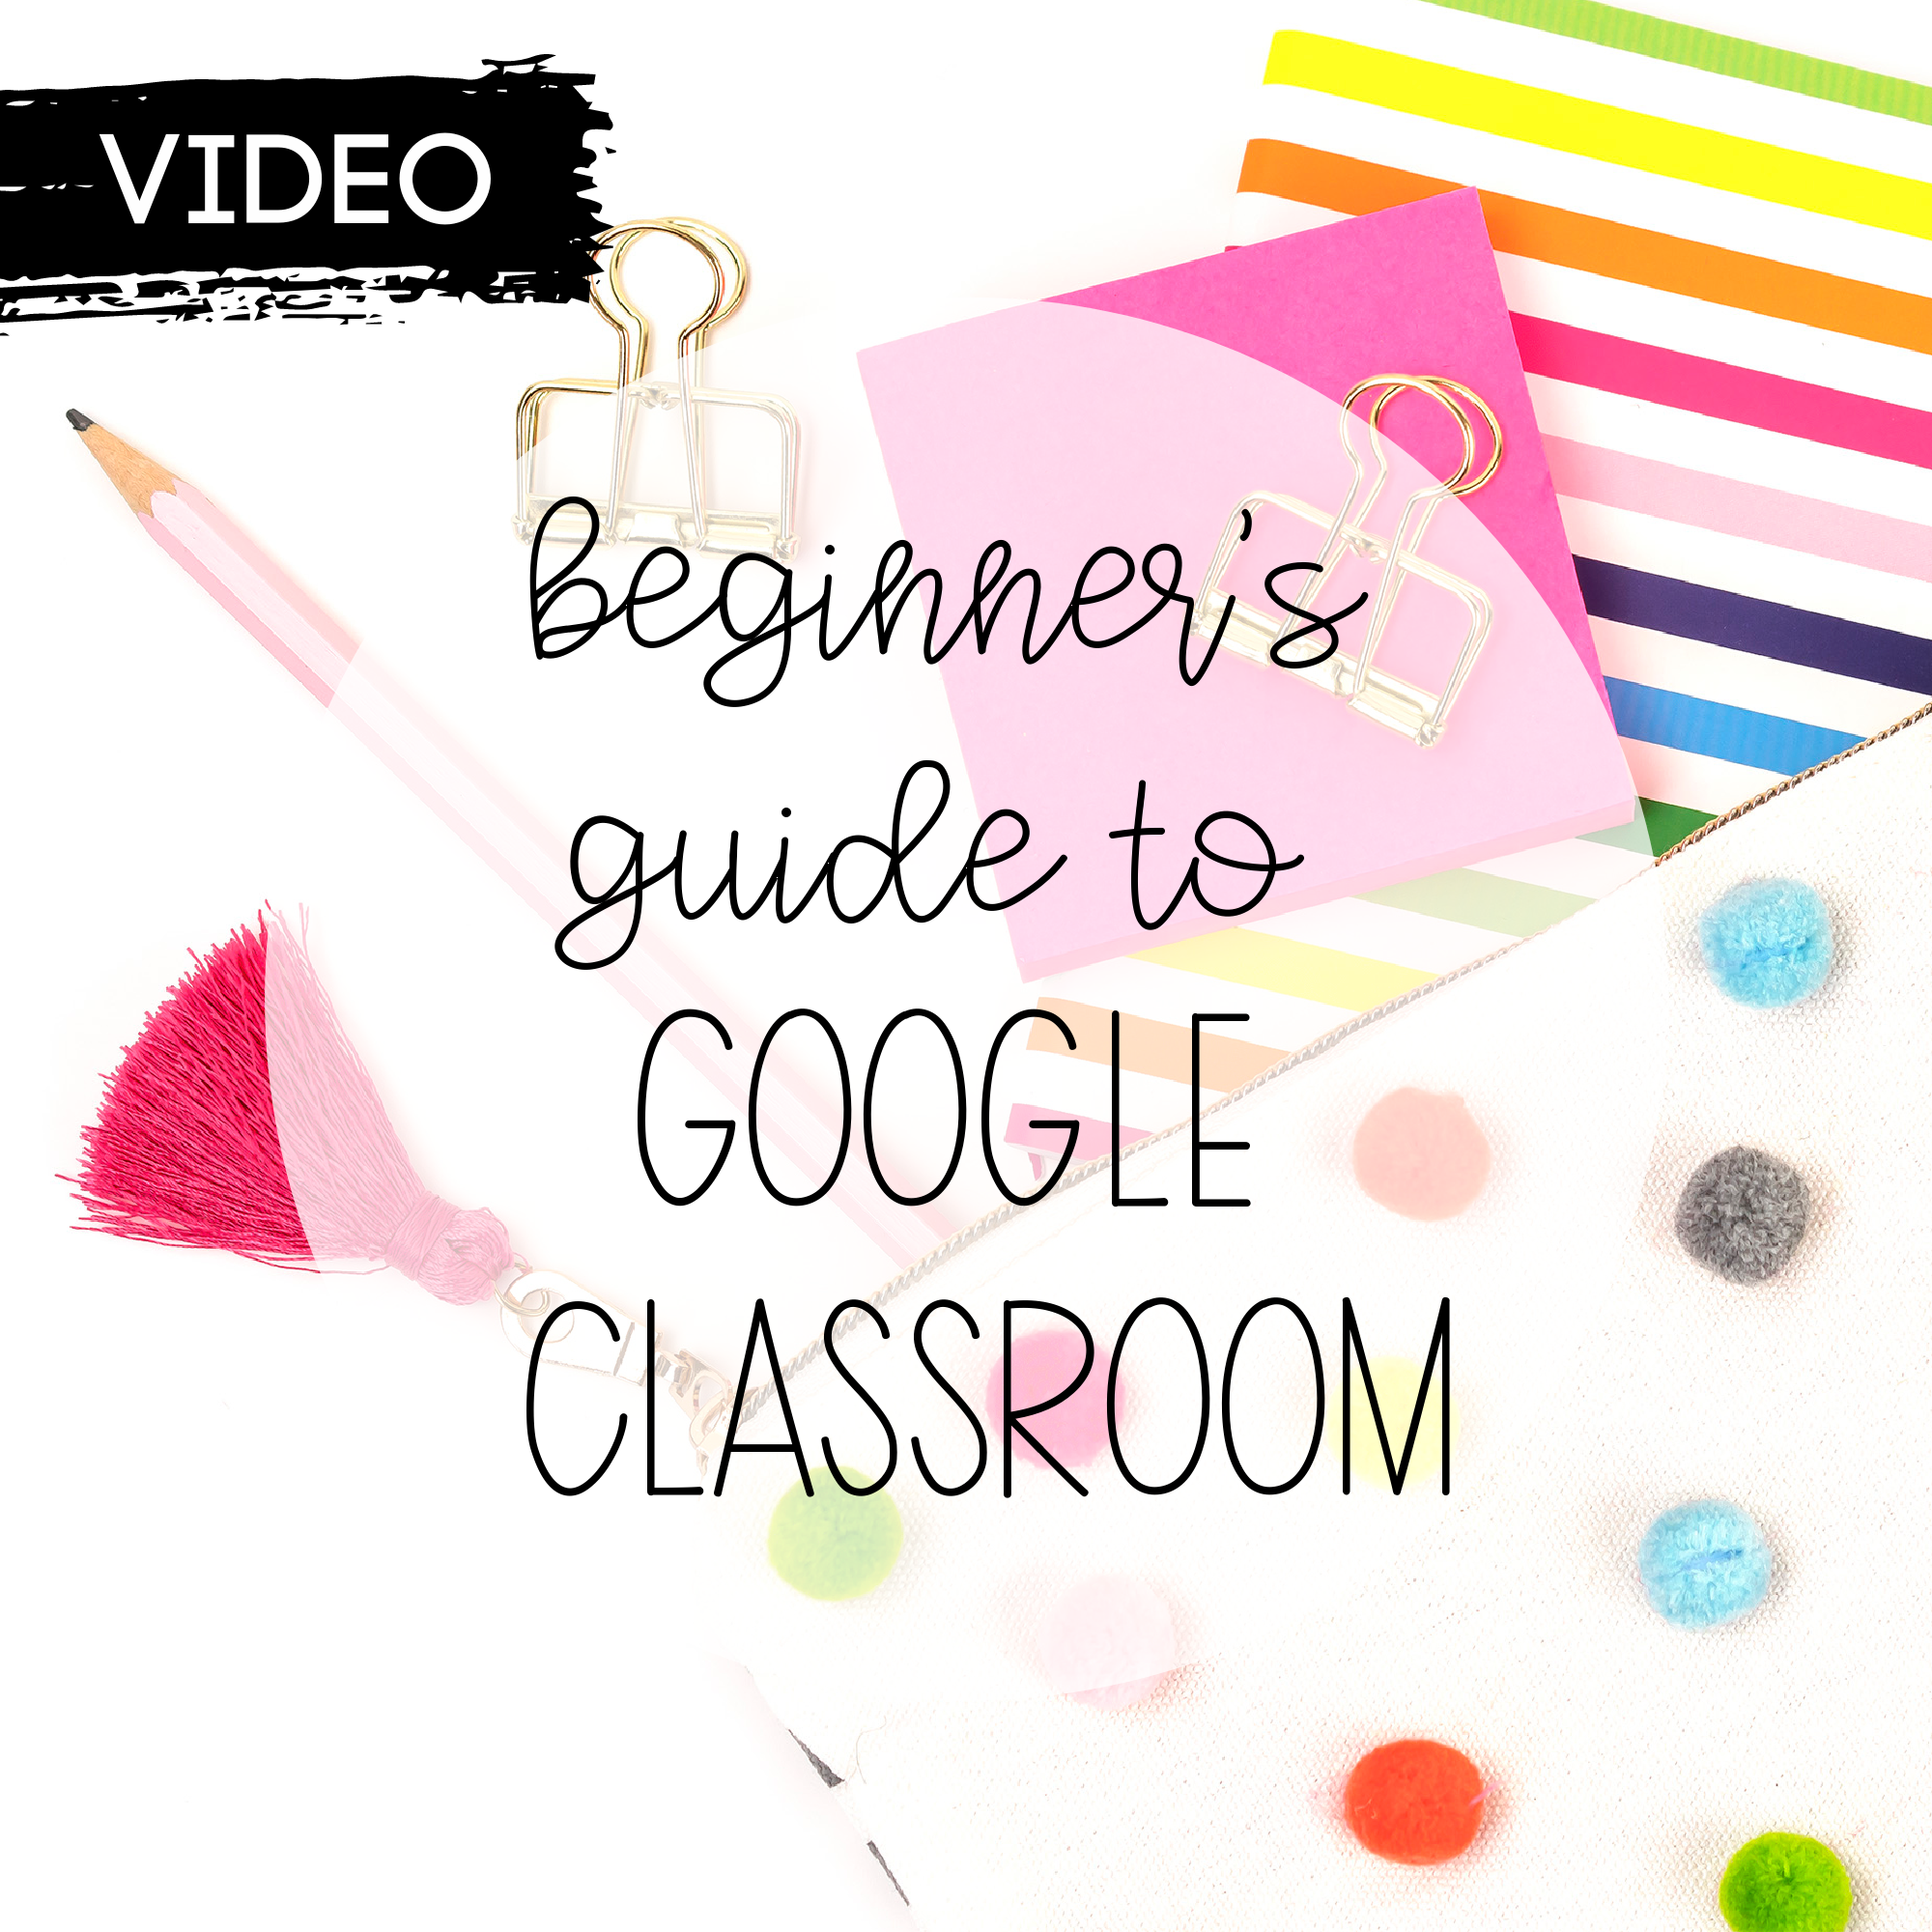 A Beginner's Guide to Google Classroom